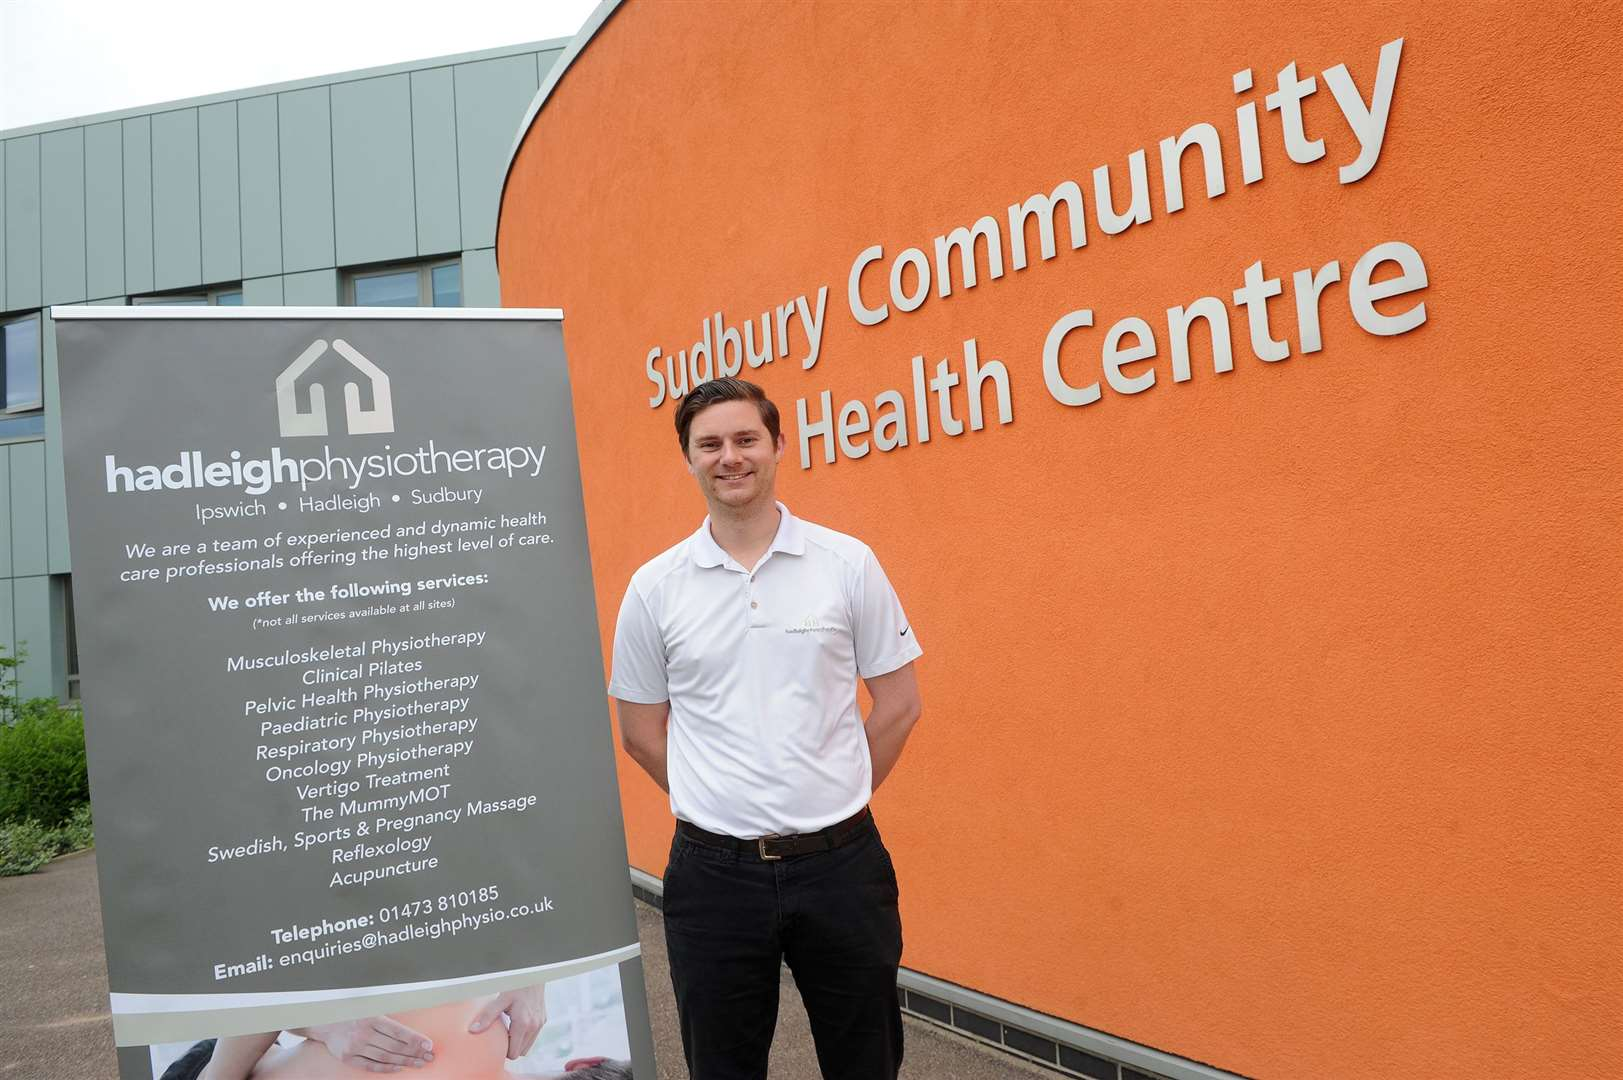 A new physiotherapy clinic is opening at Sudbury Community Health Centre on 10th June ..Pictured: James Leathers ...PICTURE: Mecha Morton... (11751205)